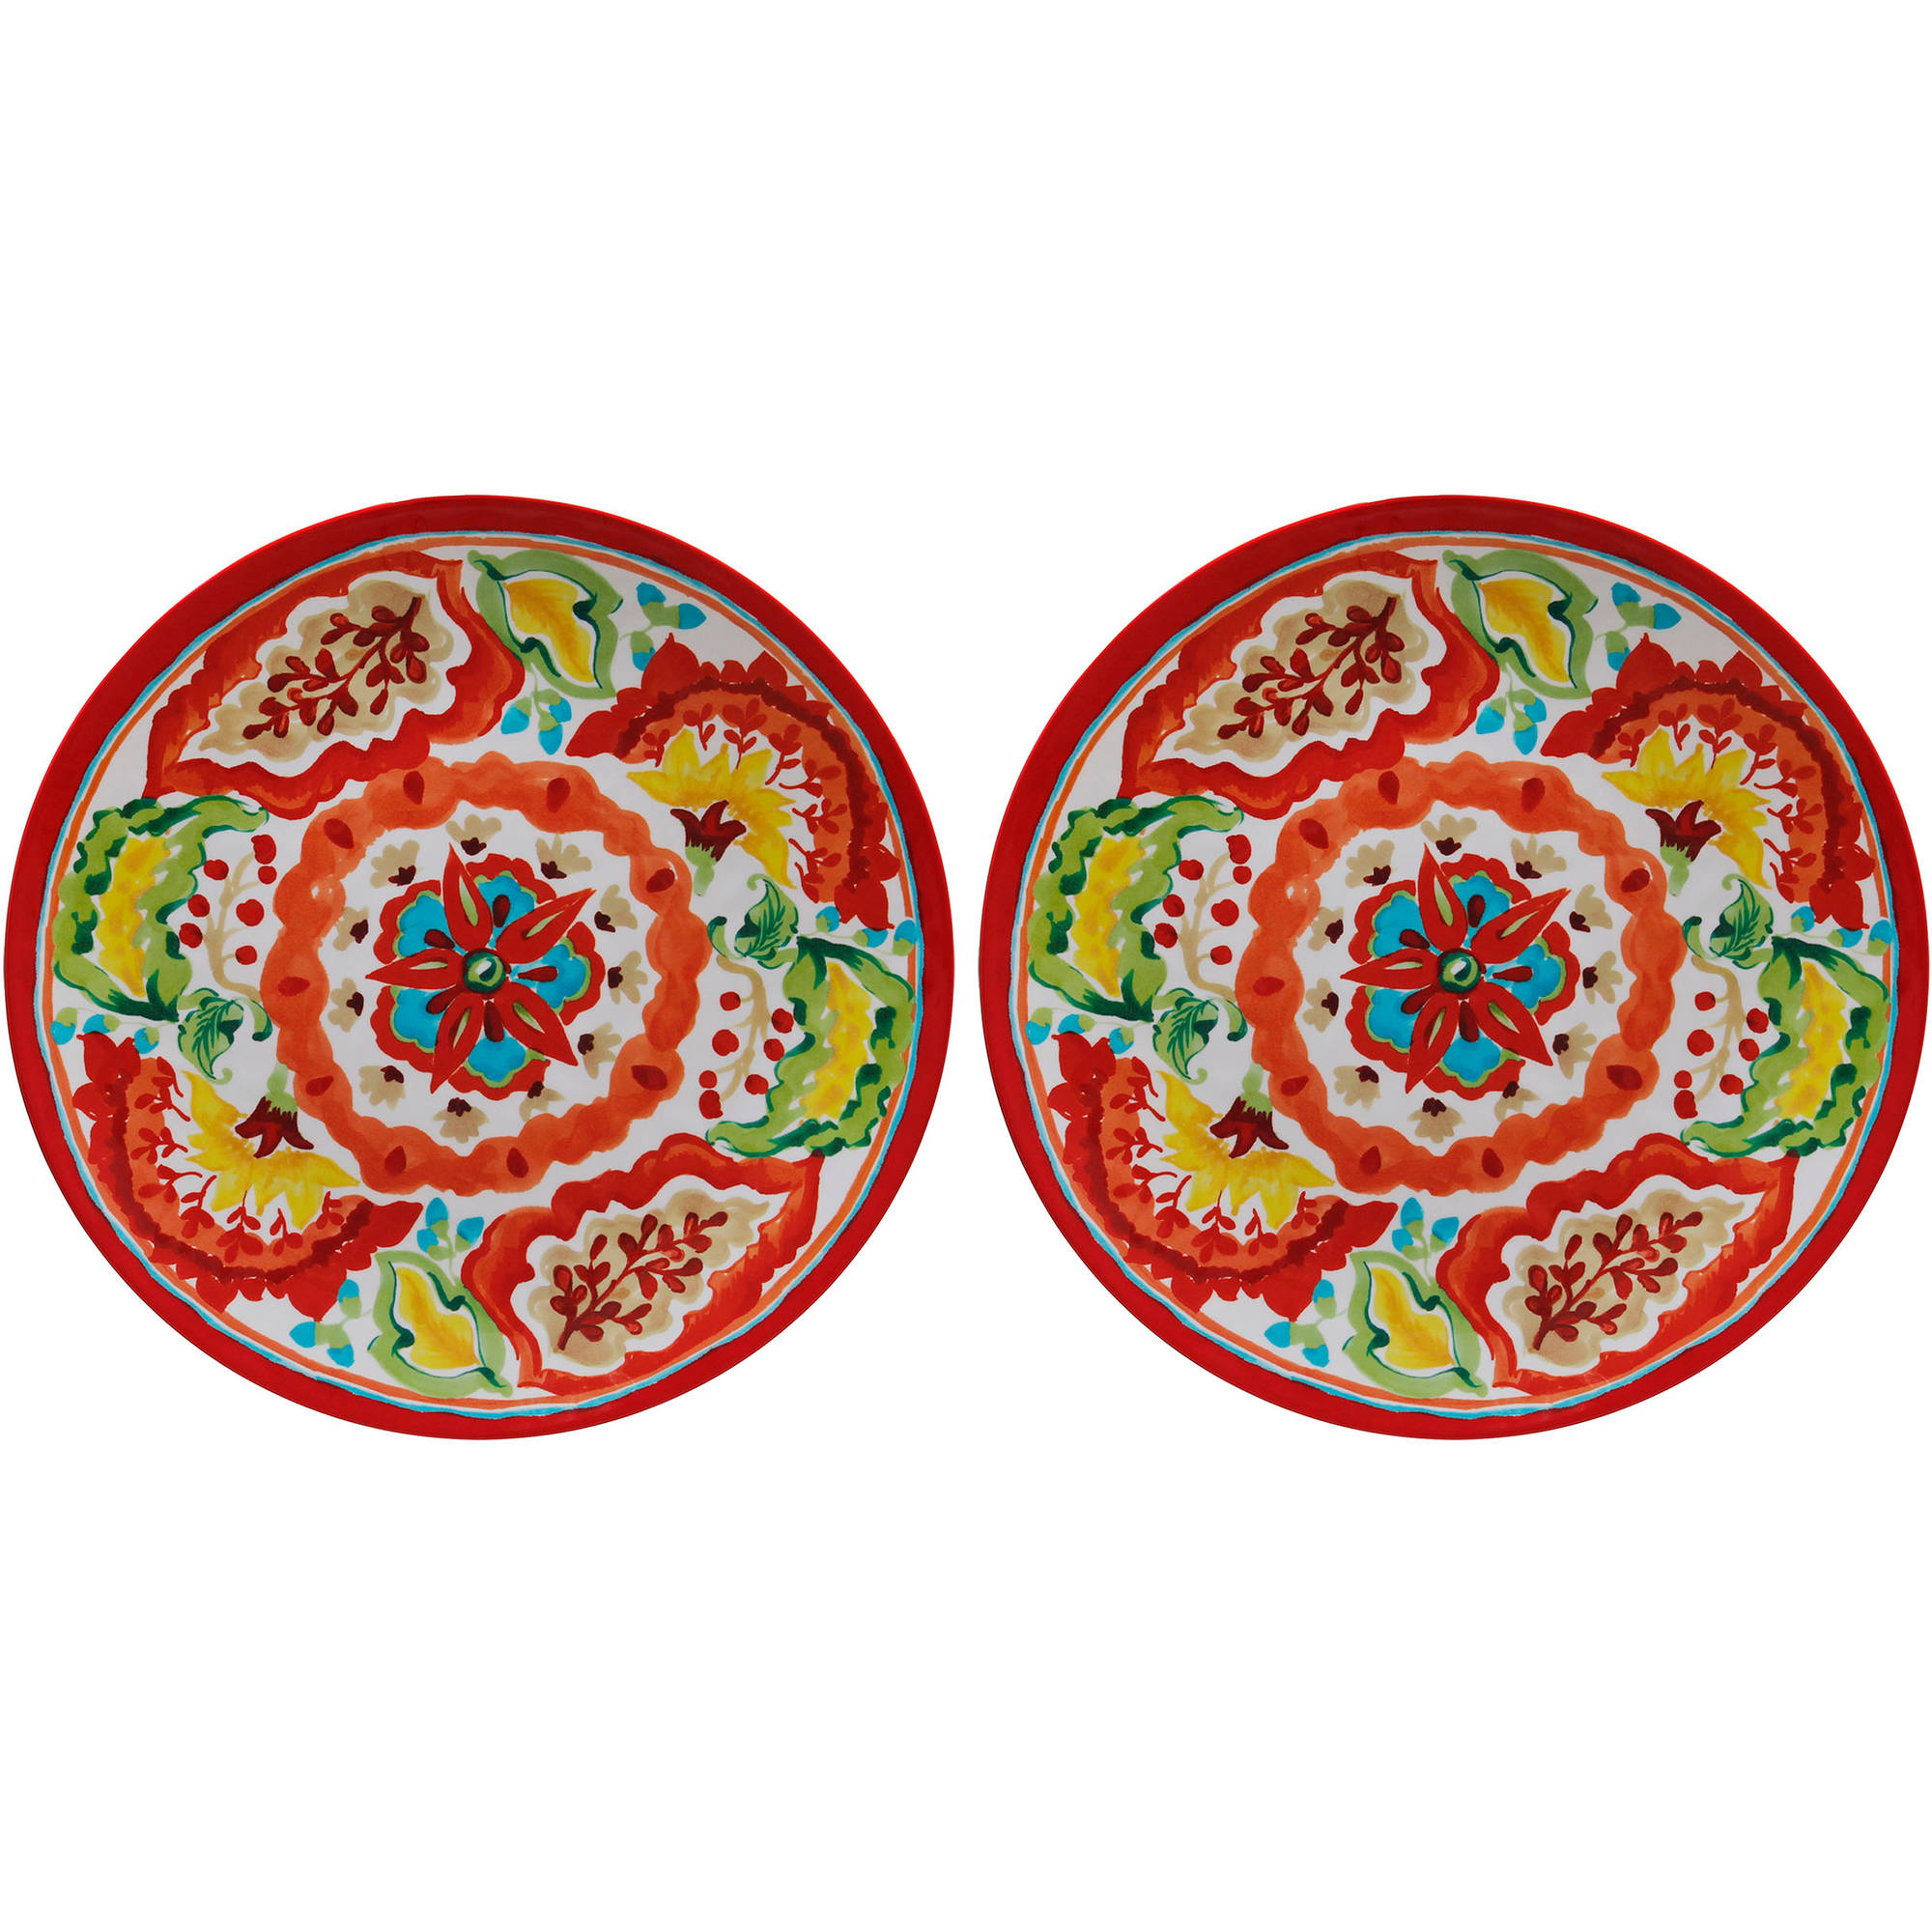 Better Homes and Gardens Print Platter, Set of 2